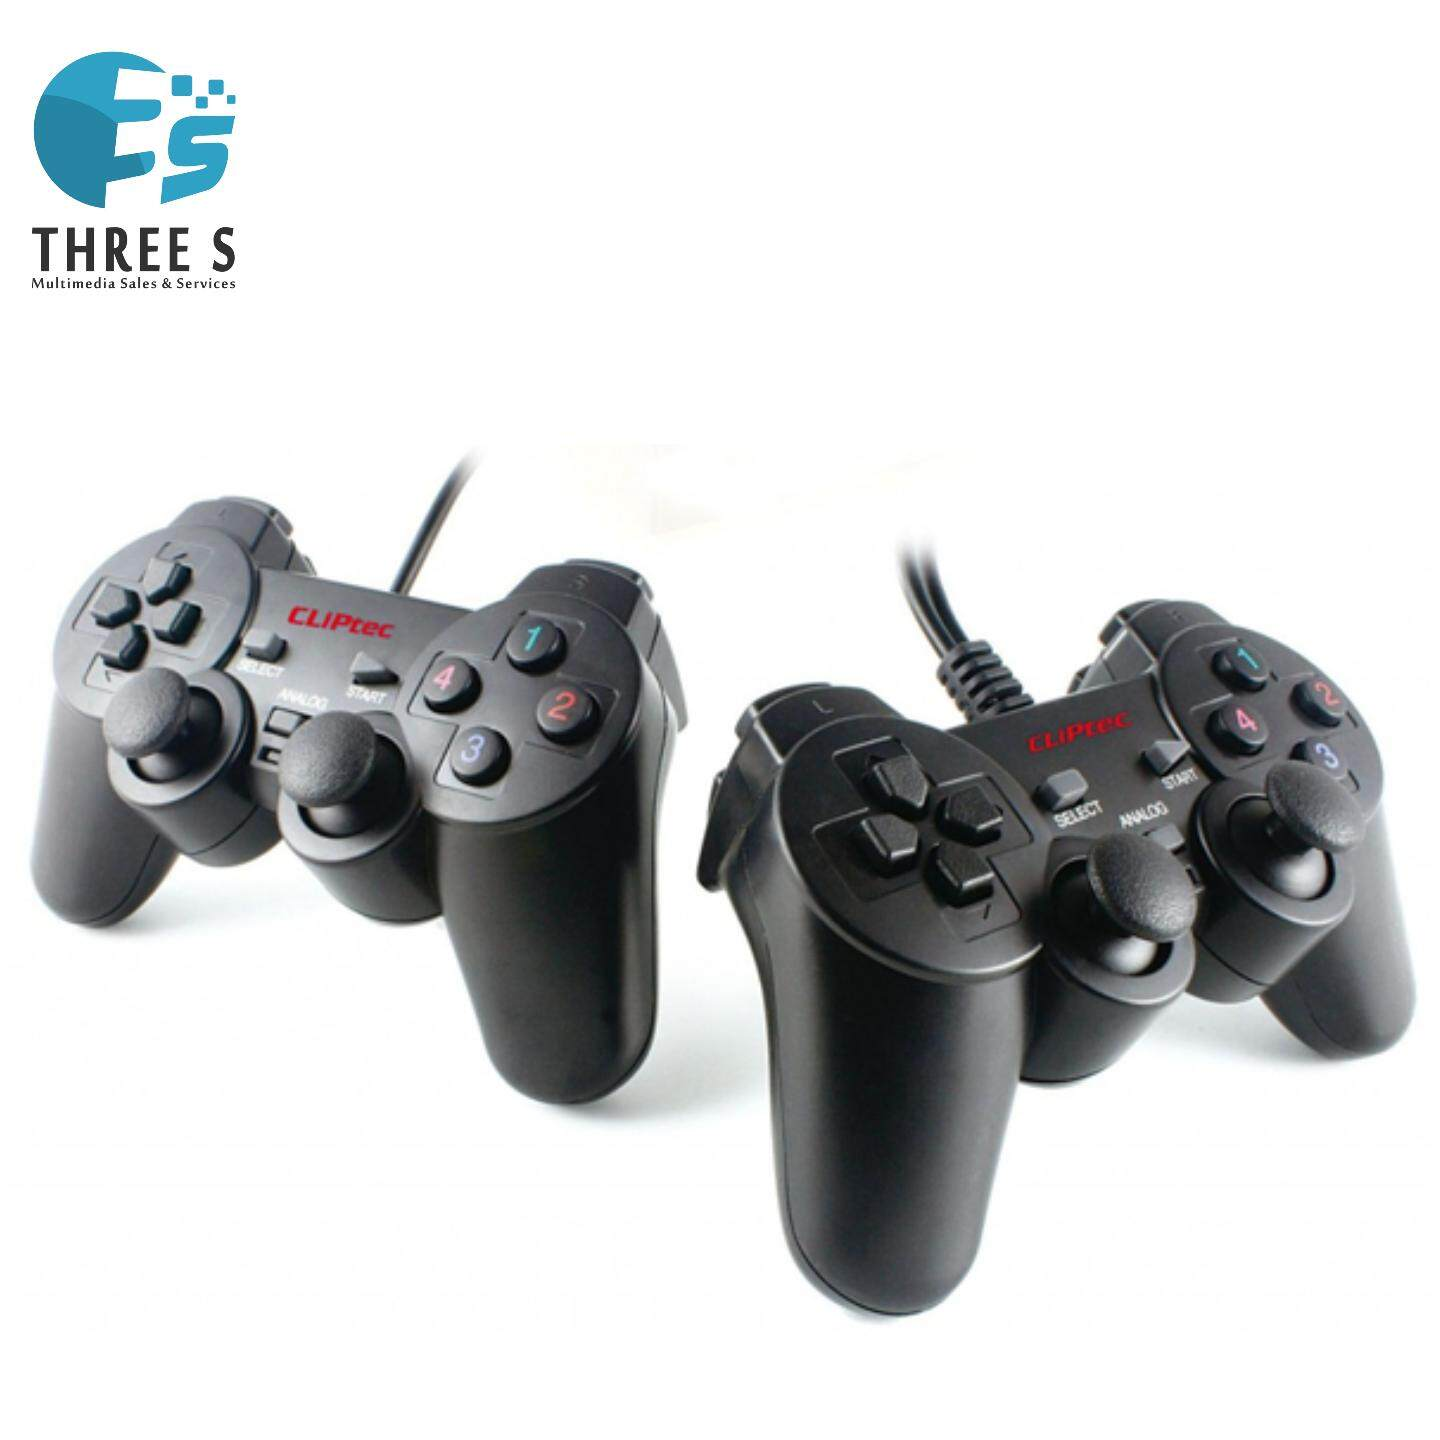 Ready Stock- CLiPtec Double Action PC USB Dual Vibration Twins Gamepad - Black RZG322